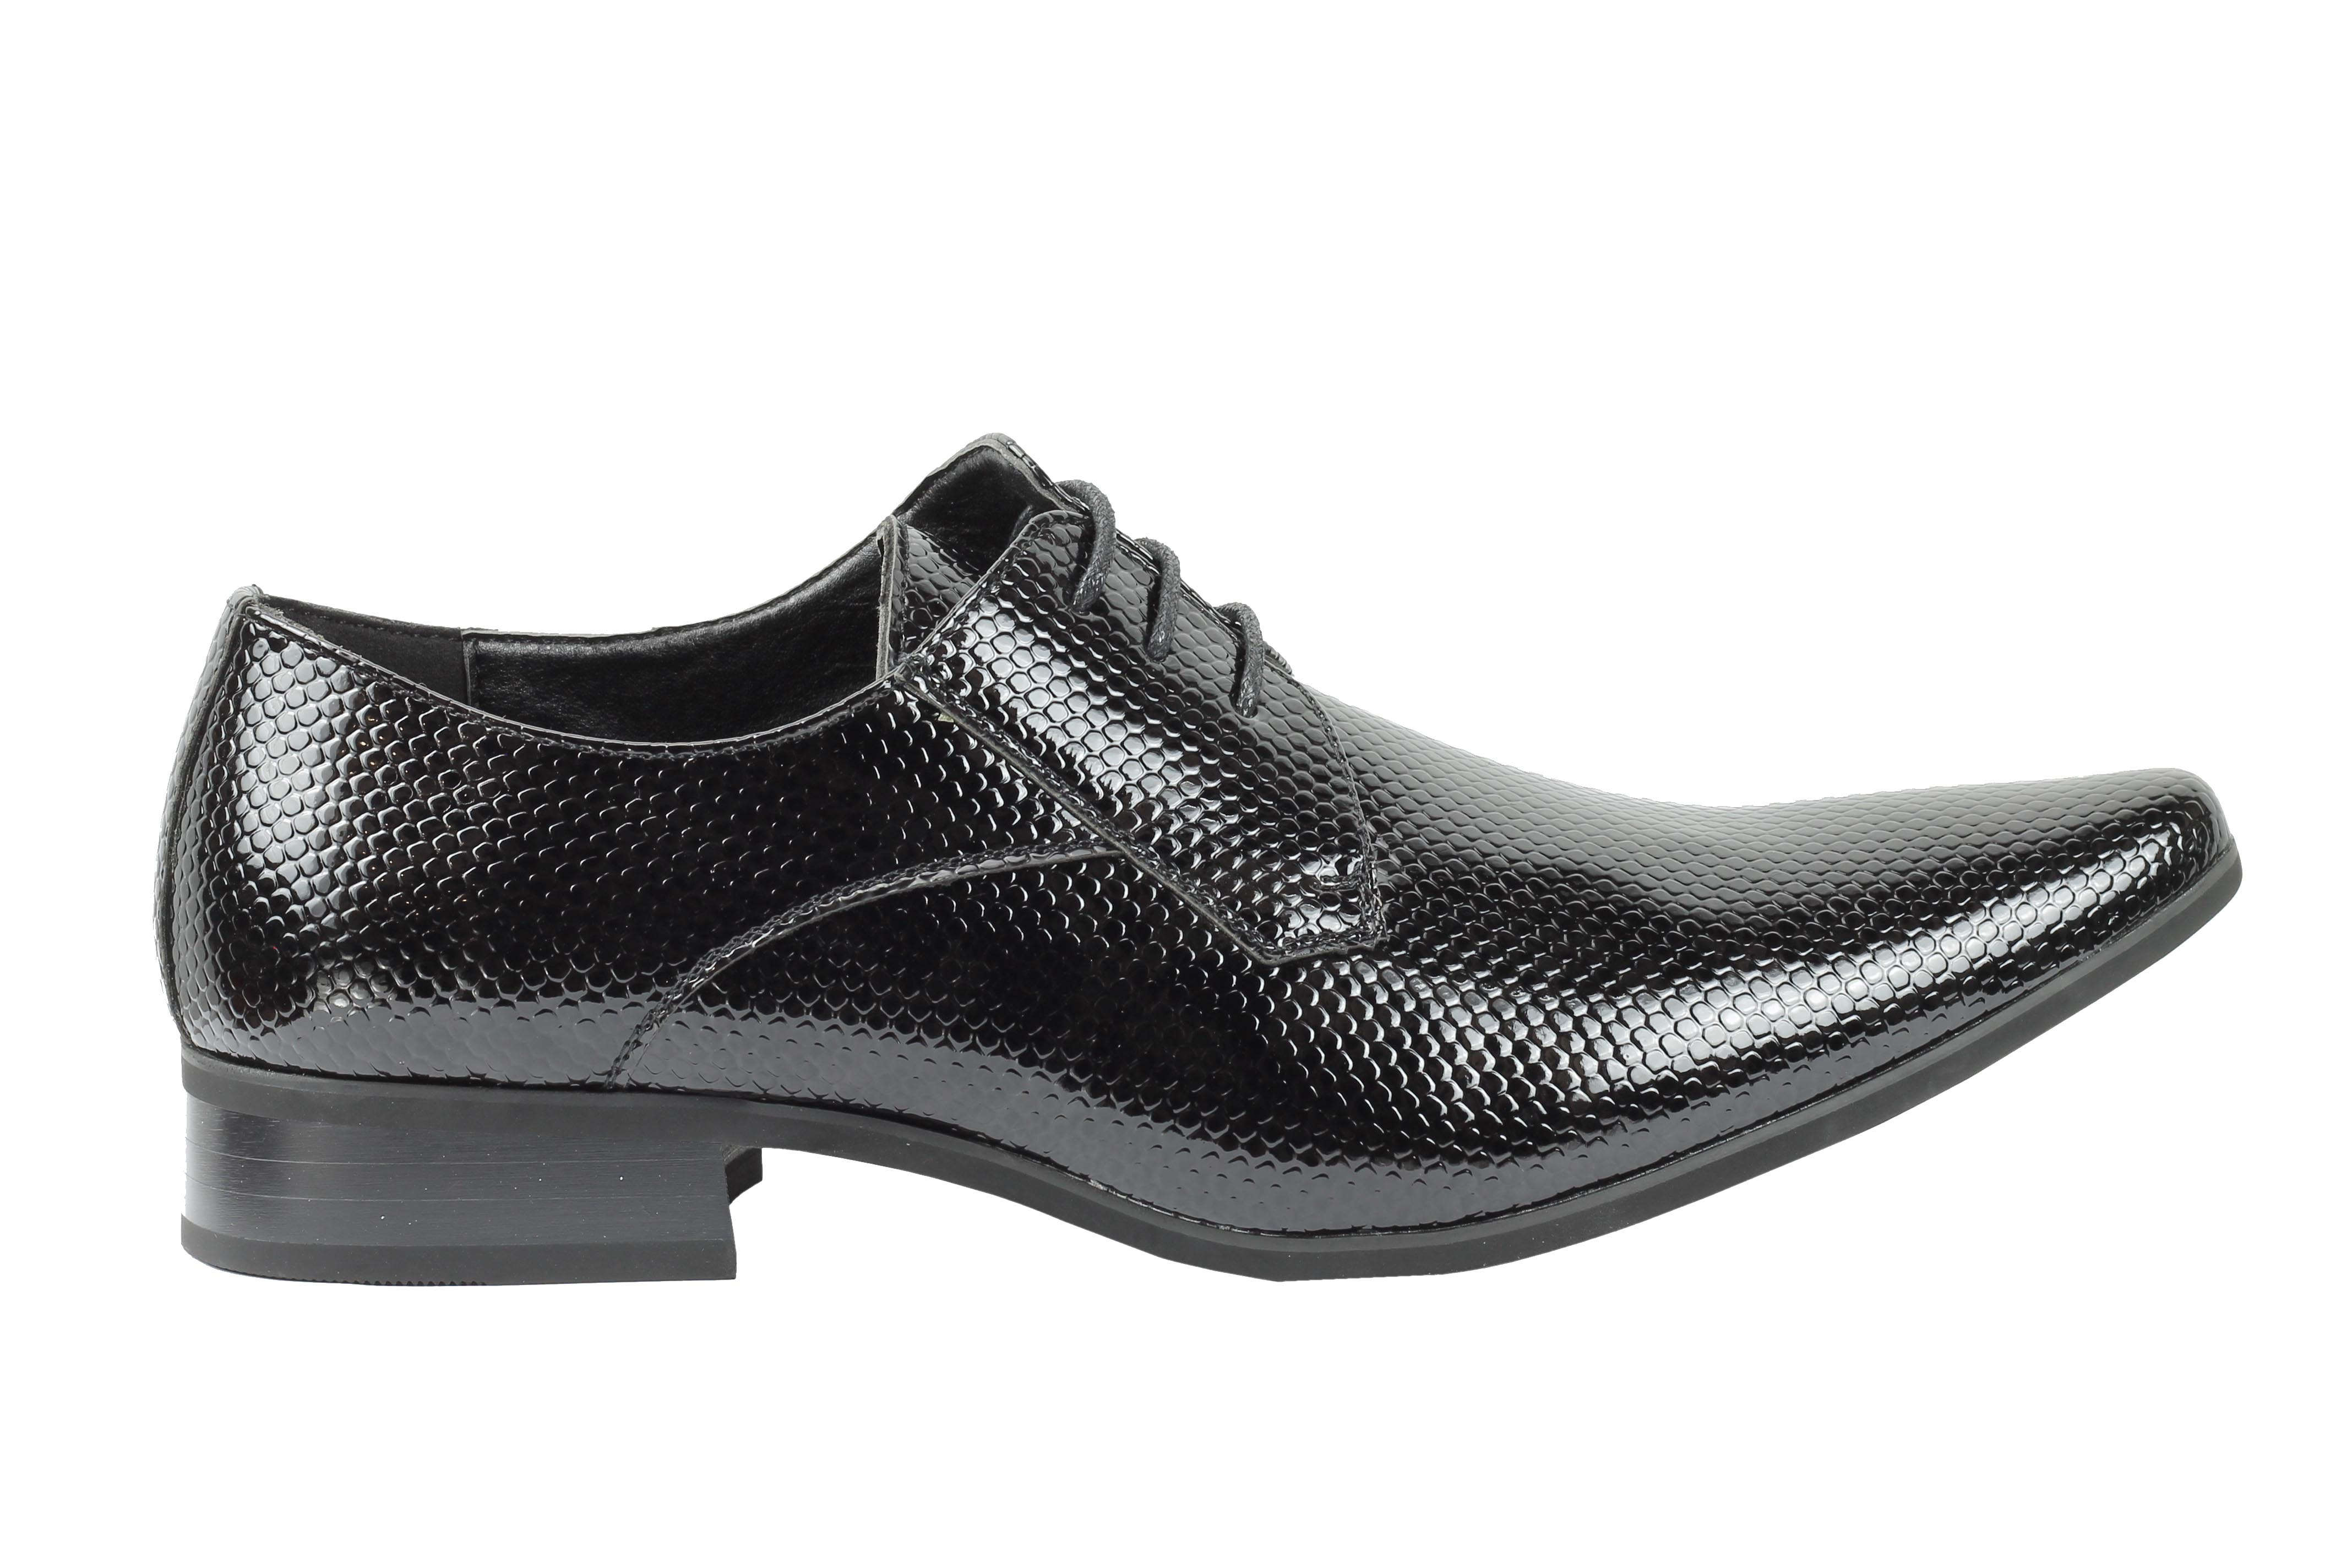 Mens-Leather-Lined-Snake-Skin-Print-Shiny-Patent-Leather-Smart-Party-Retro-Shoes thumbnail 4